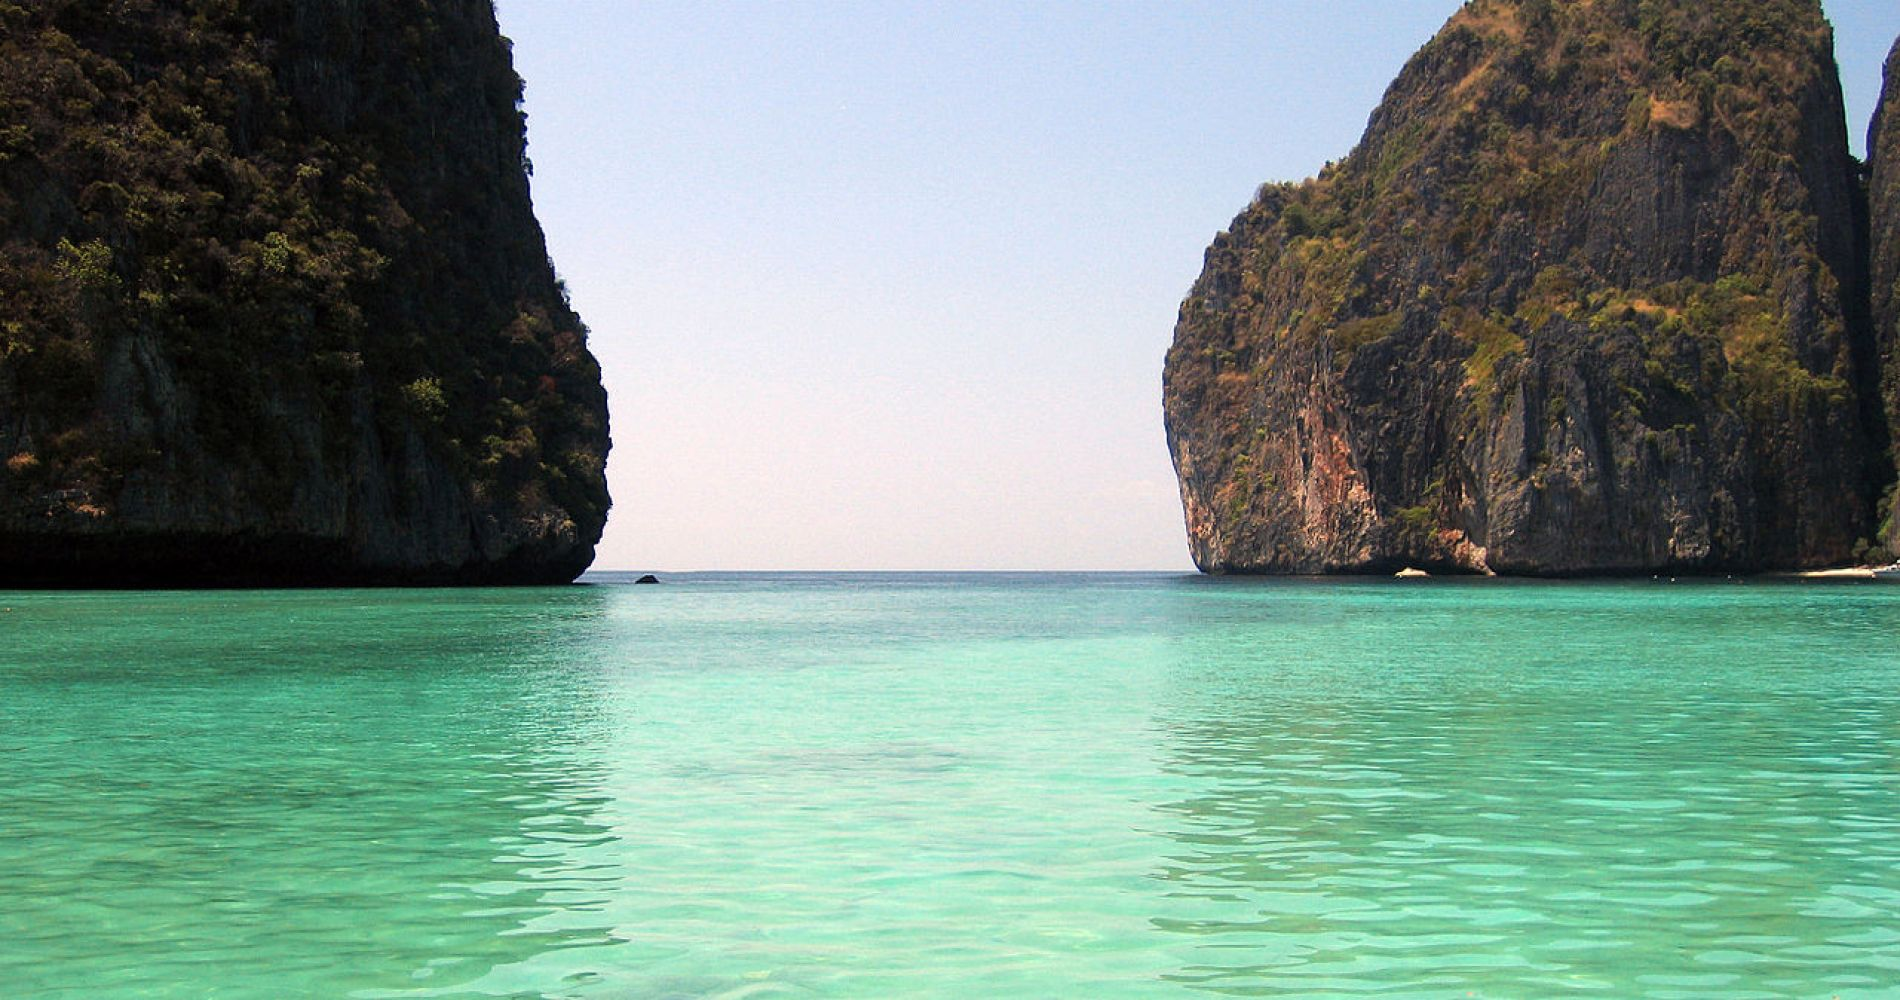 Overnight Boat Experience Thailand tinggly experience gift